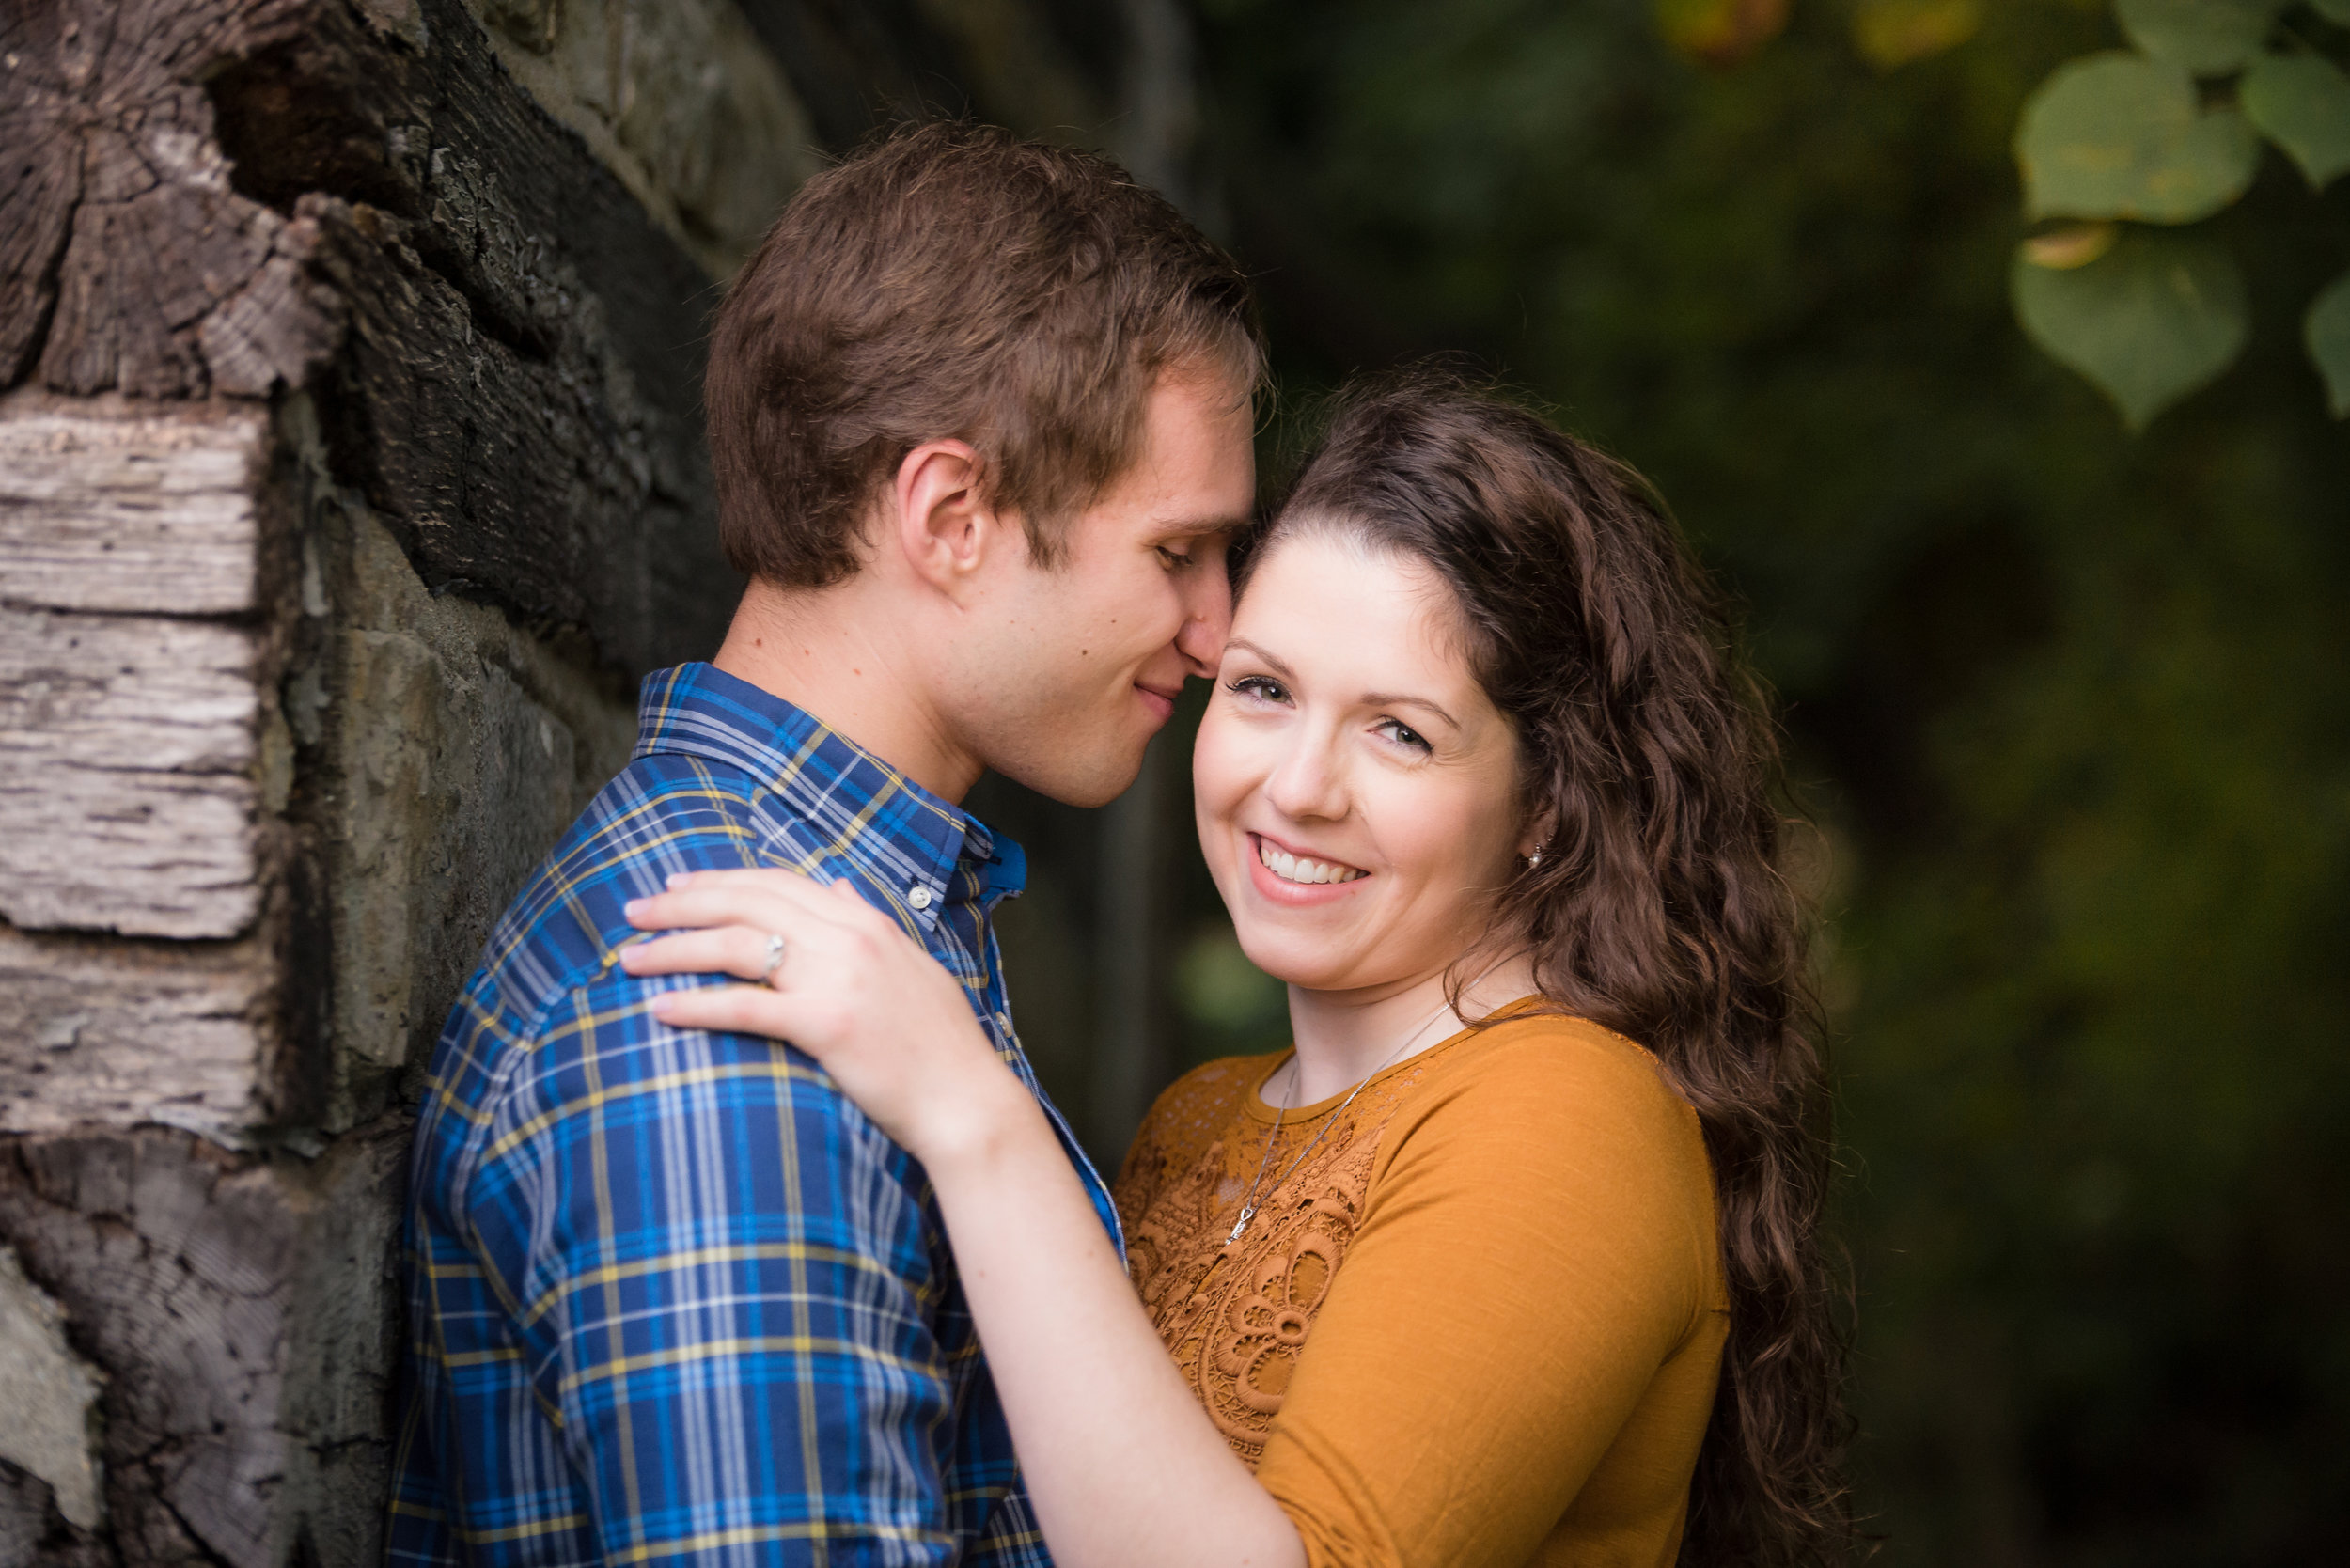 Lauren-Alex-Engagement-Garcia-Photography-9262.jpg